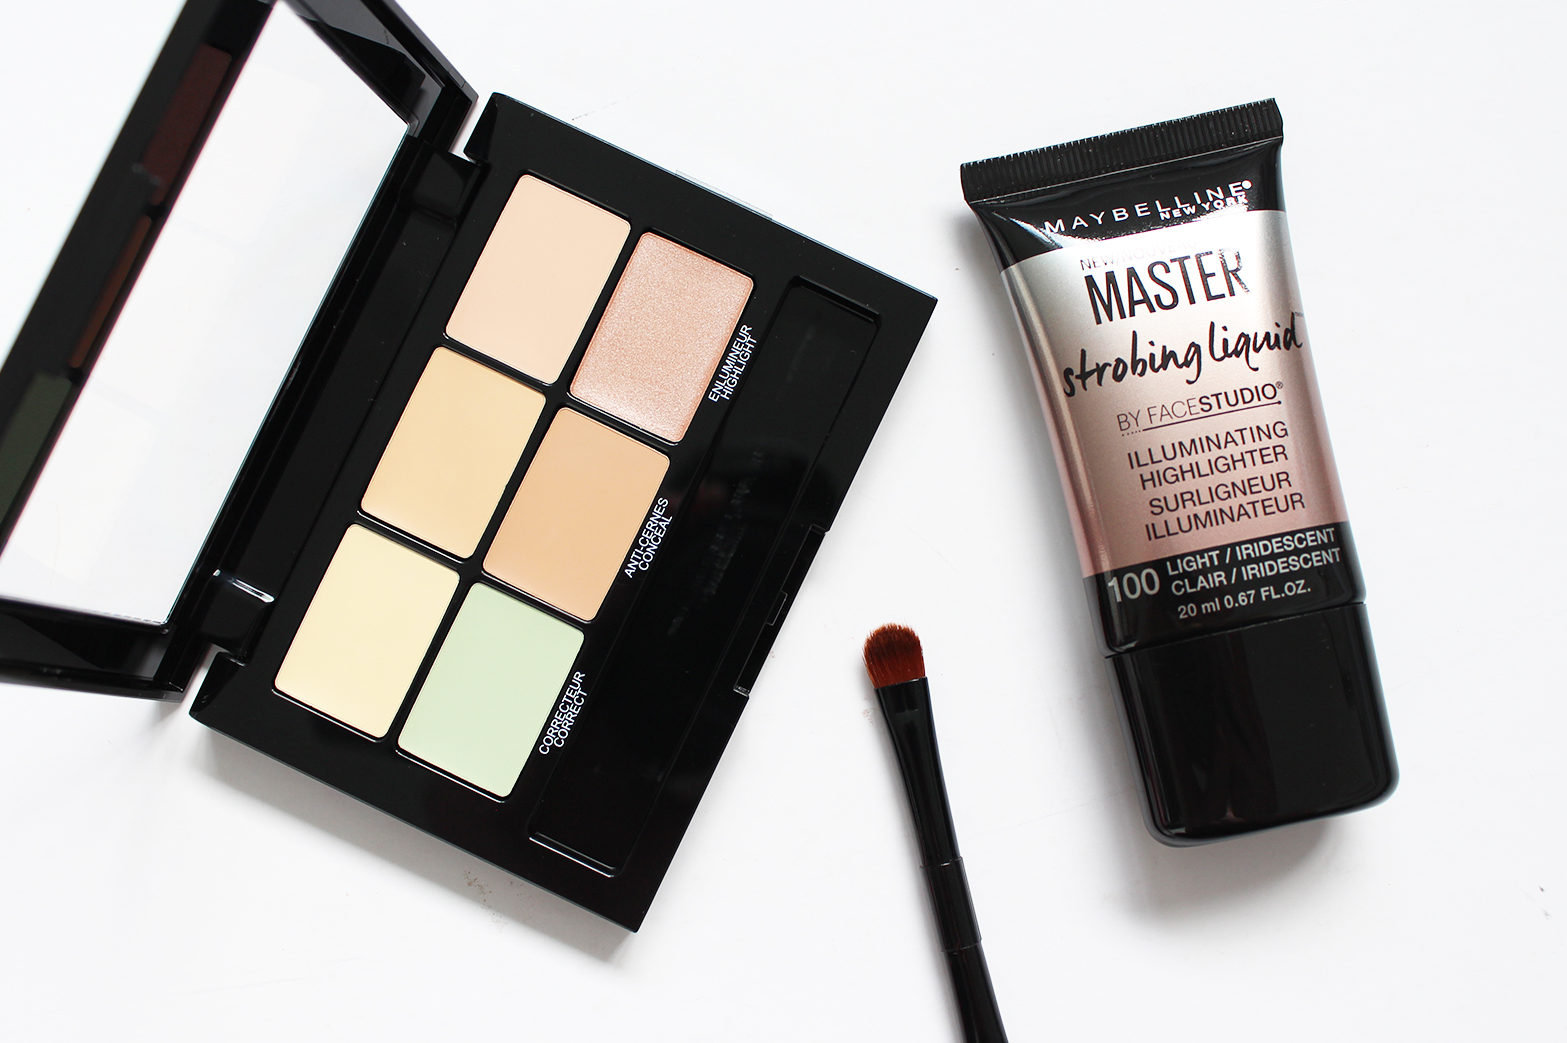 MAYBELLINE | New Mid-Year Releases - First Impressions + Swatches - CassandraMyee